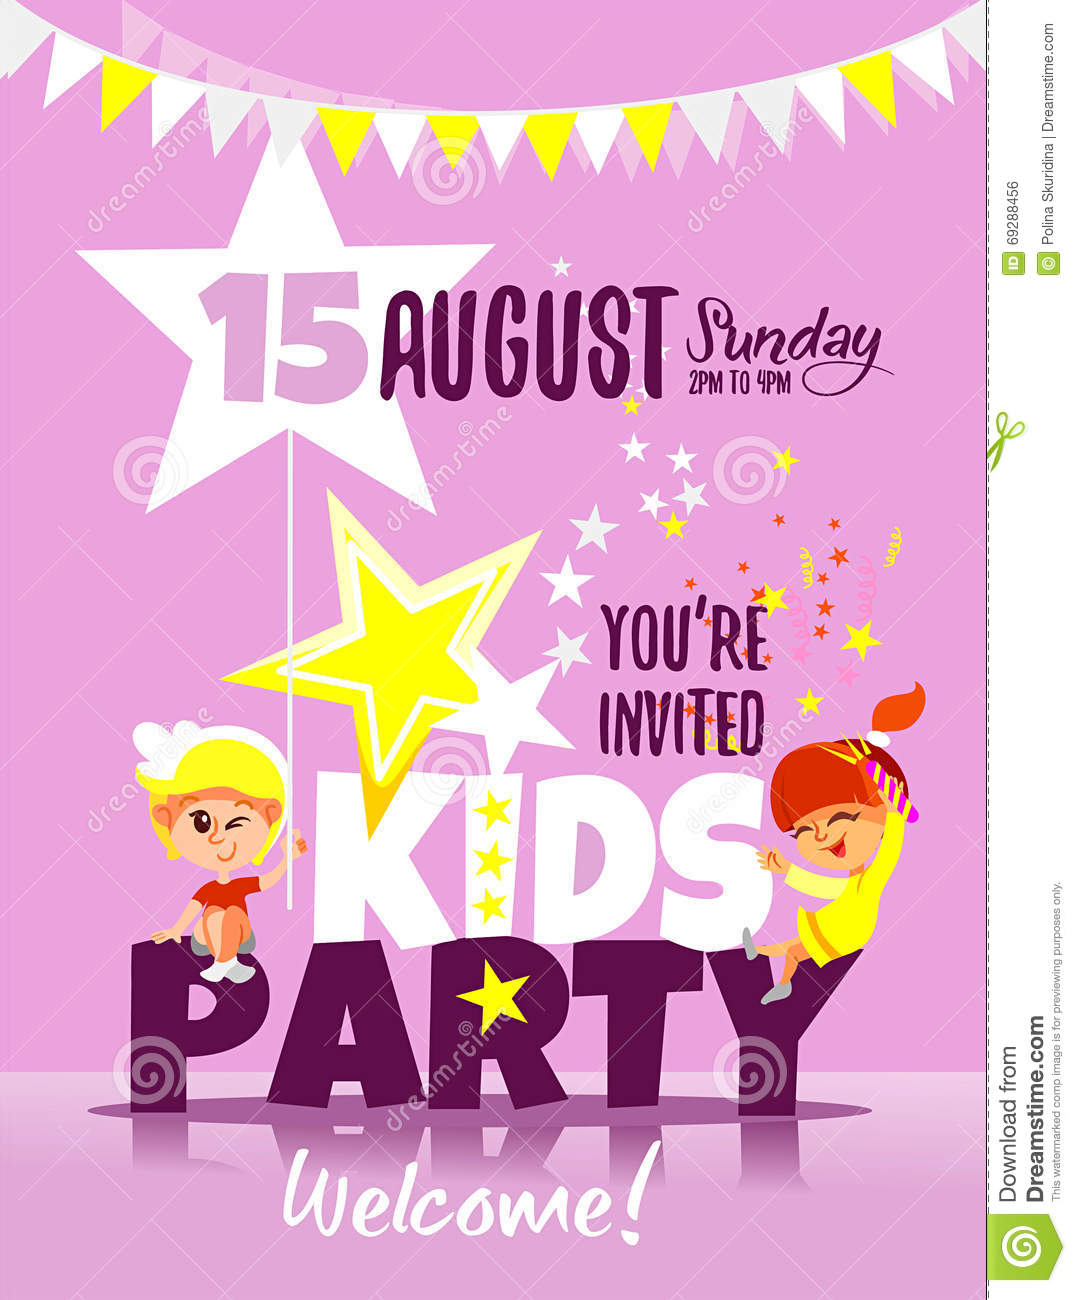 Kids Party Invitation Template With Happy Children Celebrating